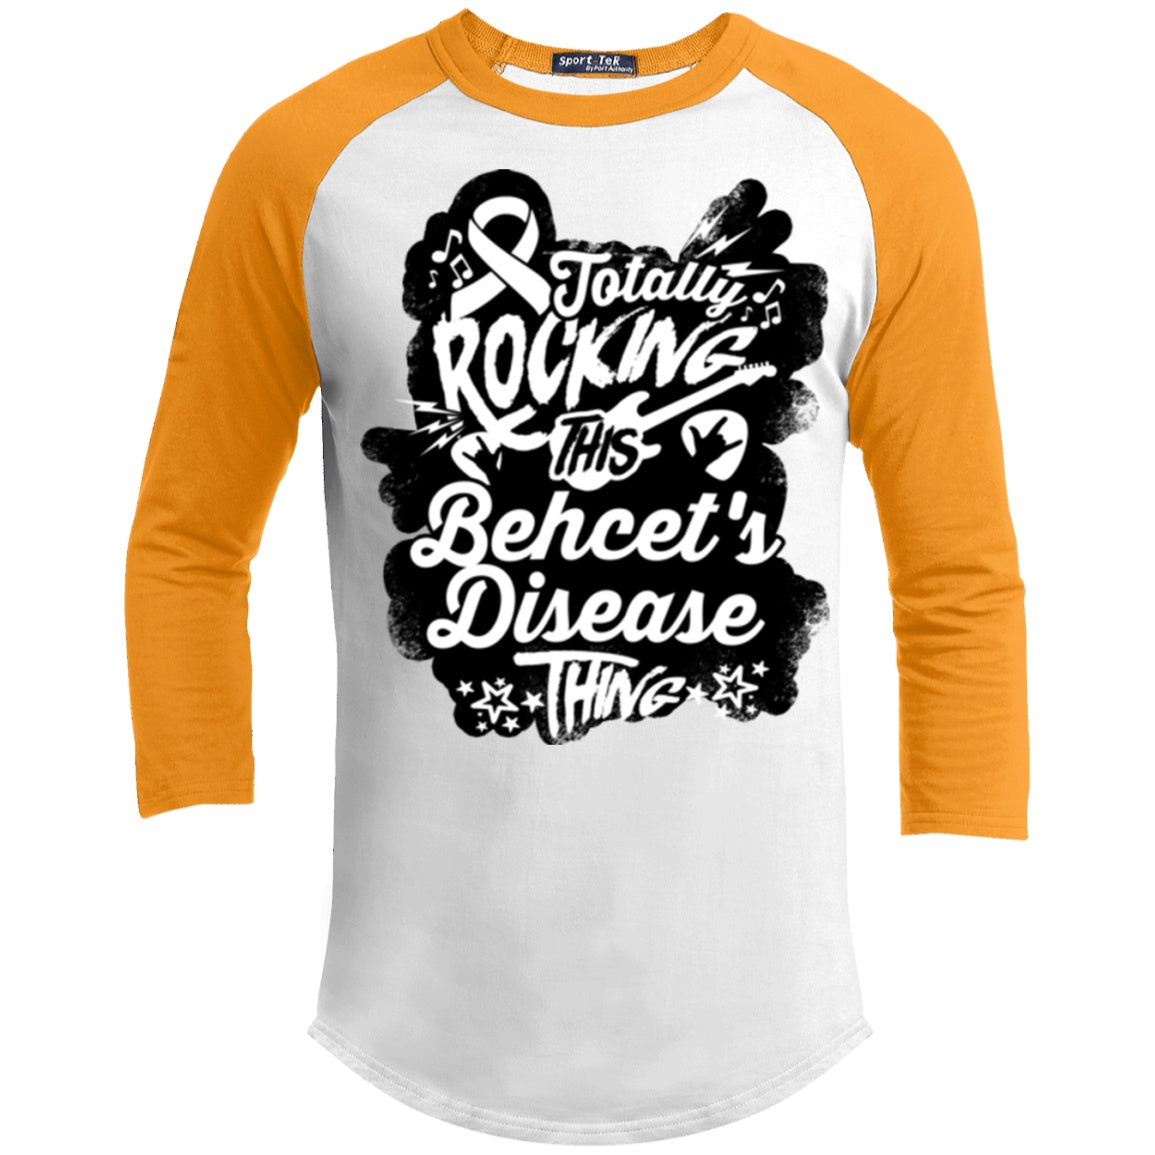 Rocking Behcet's Disease Baseball Shirt - The Unchargeables